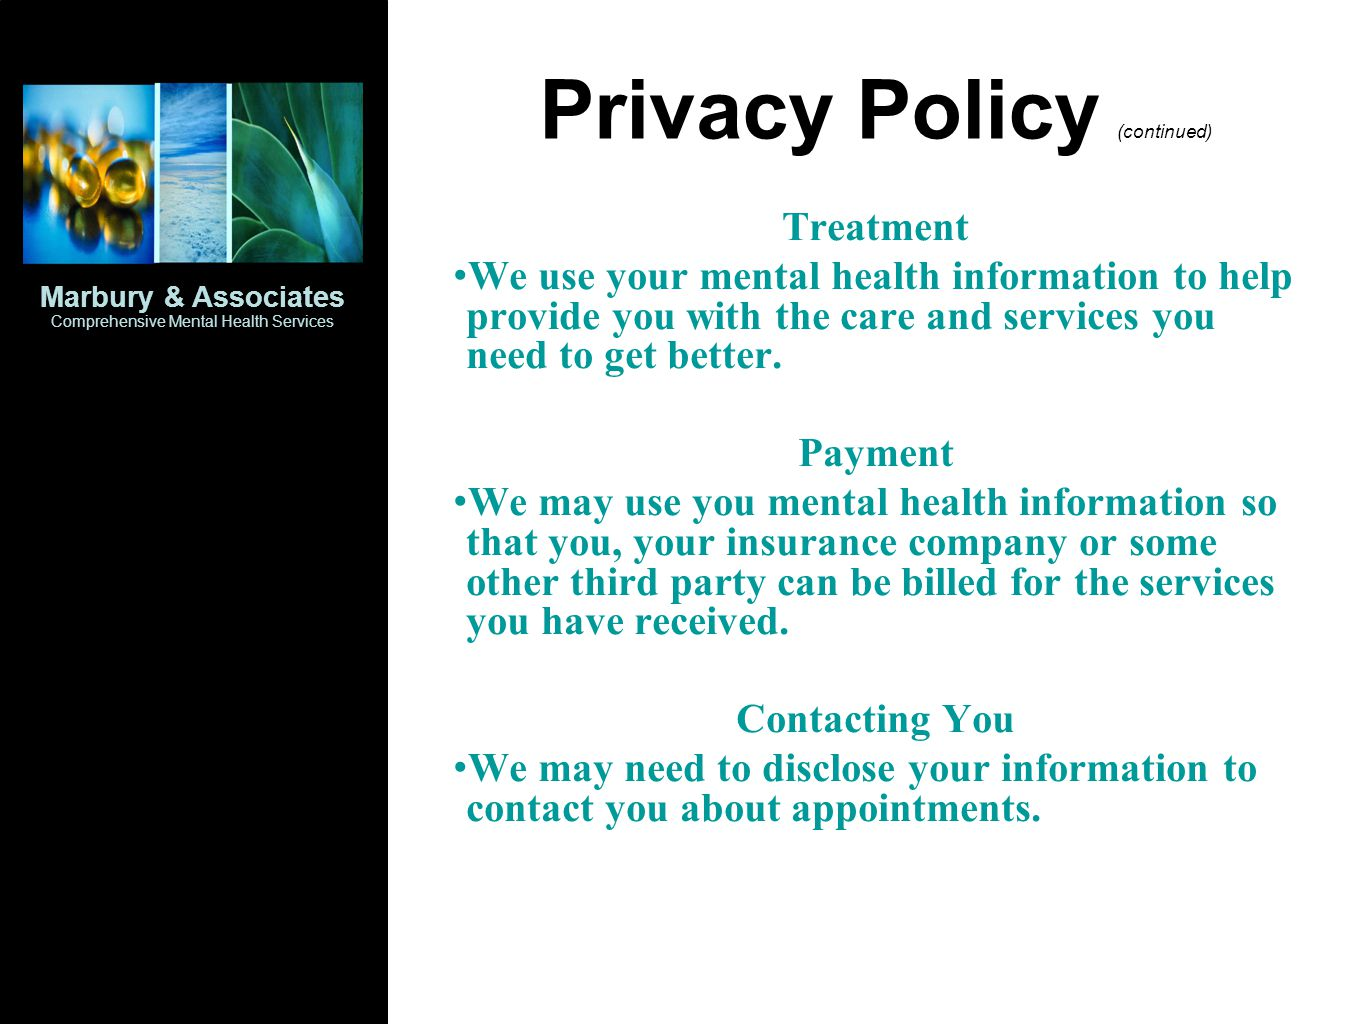 Privacy Policy (continued) Treatment We use your mental health information to help provide you with the care and services you need to get better.